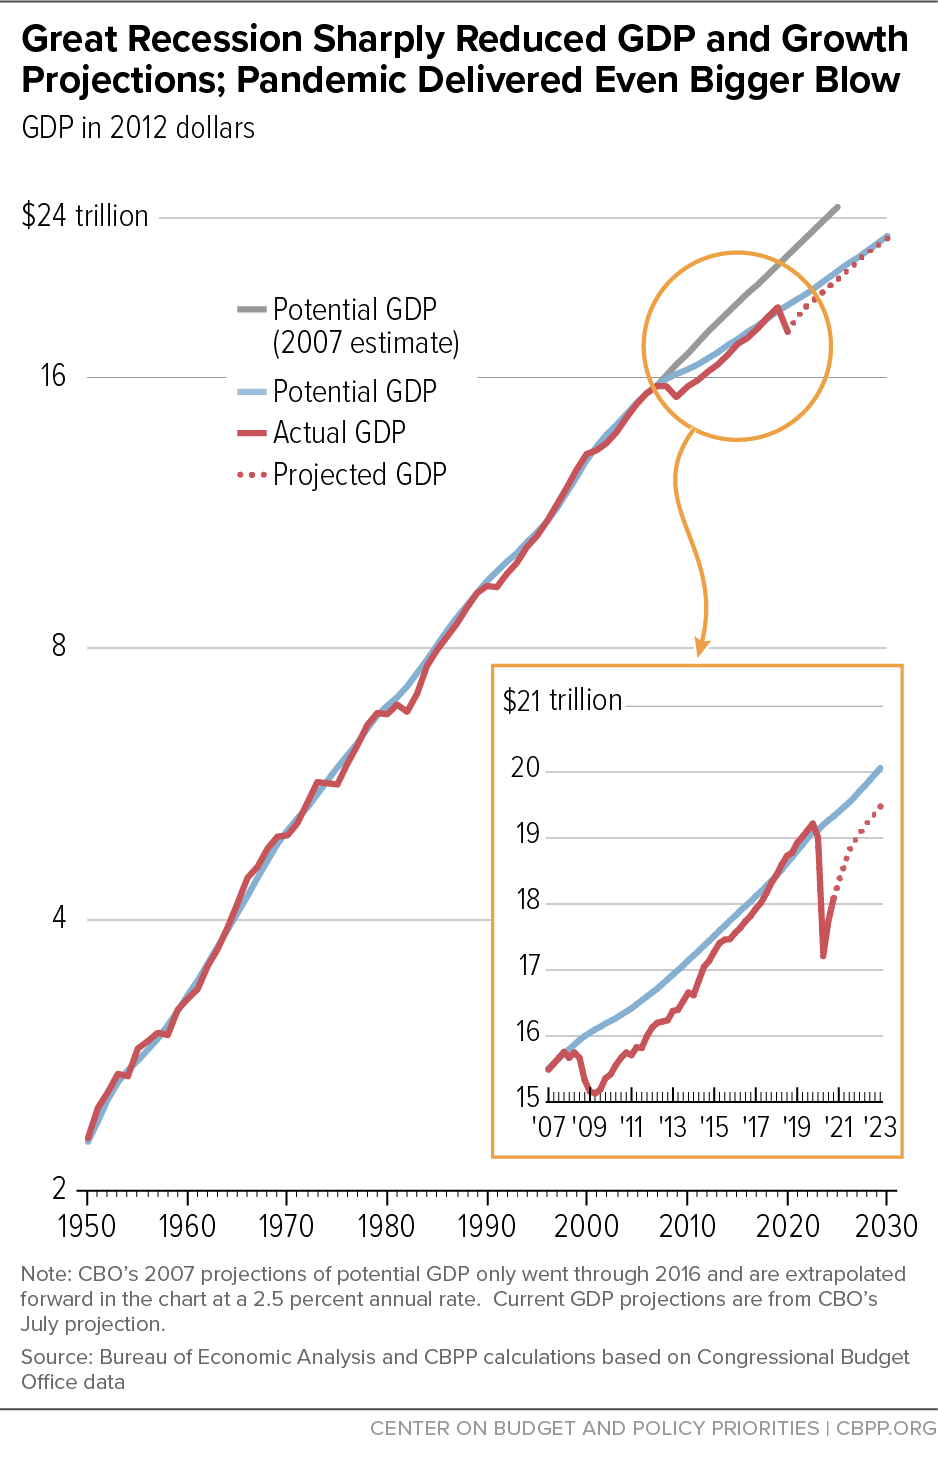 Great Recession Sharply Reduced GDP and Growth Projections; Pandemic Delivered Even Bigger Blow